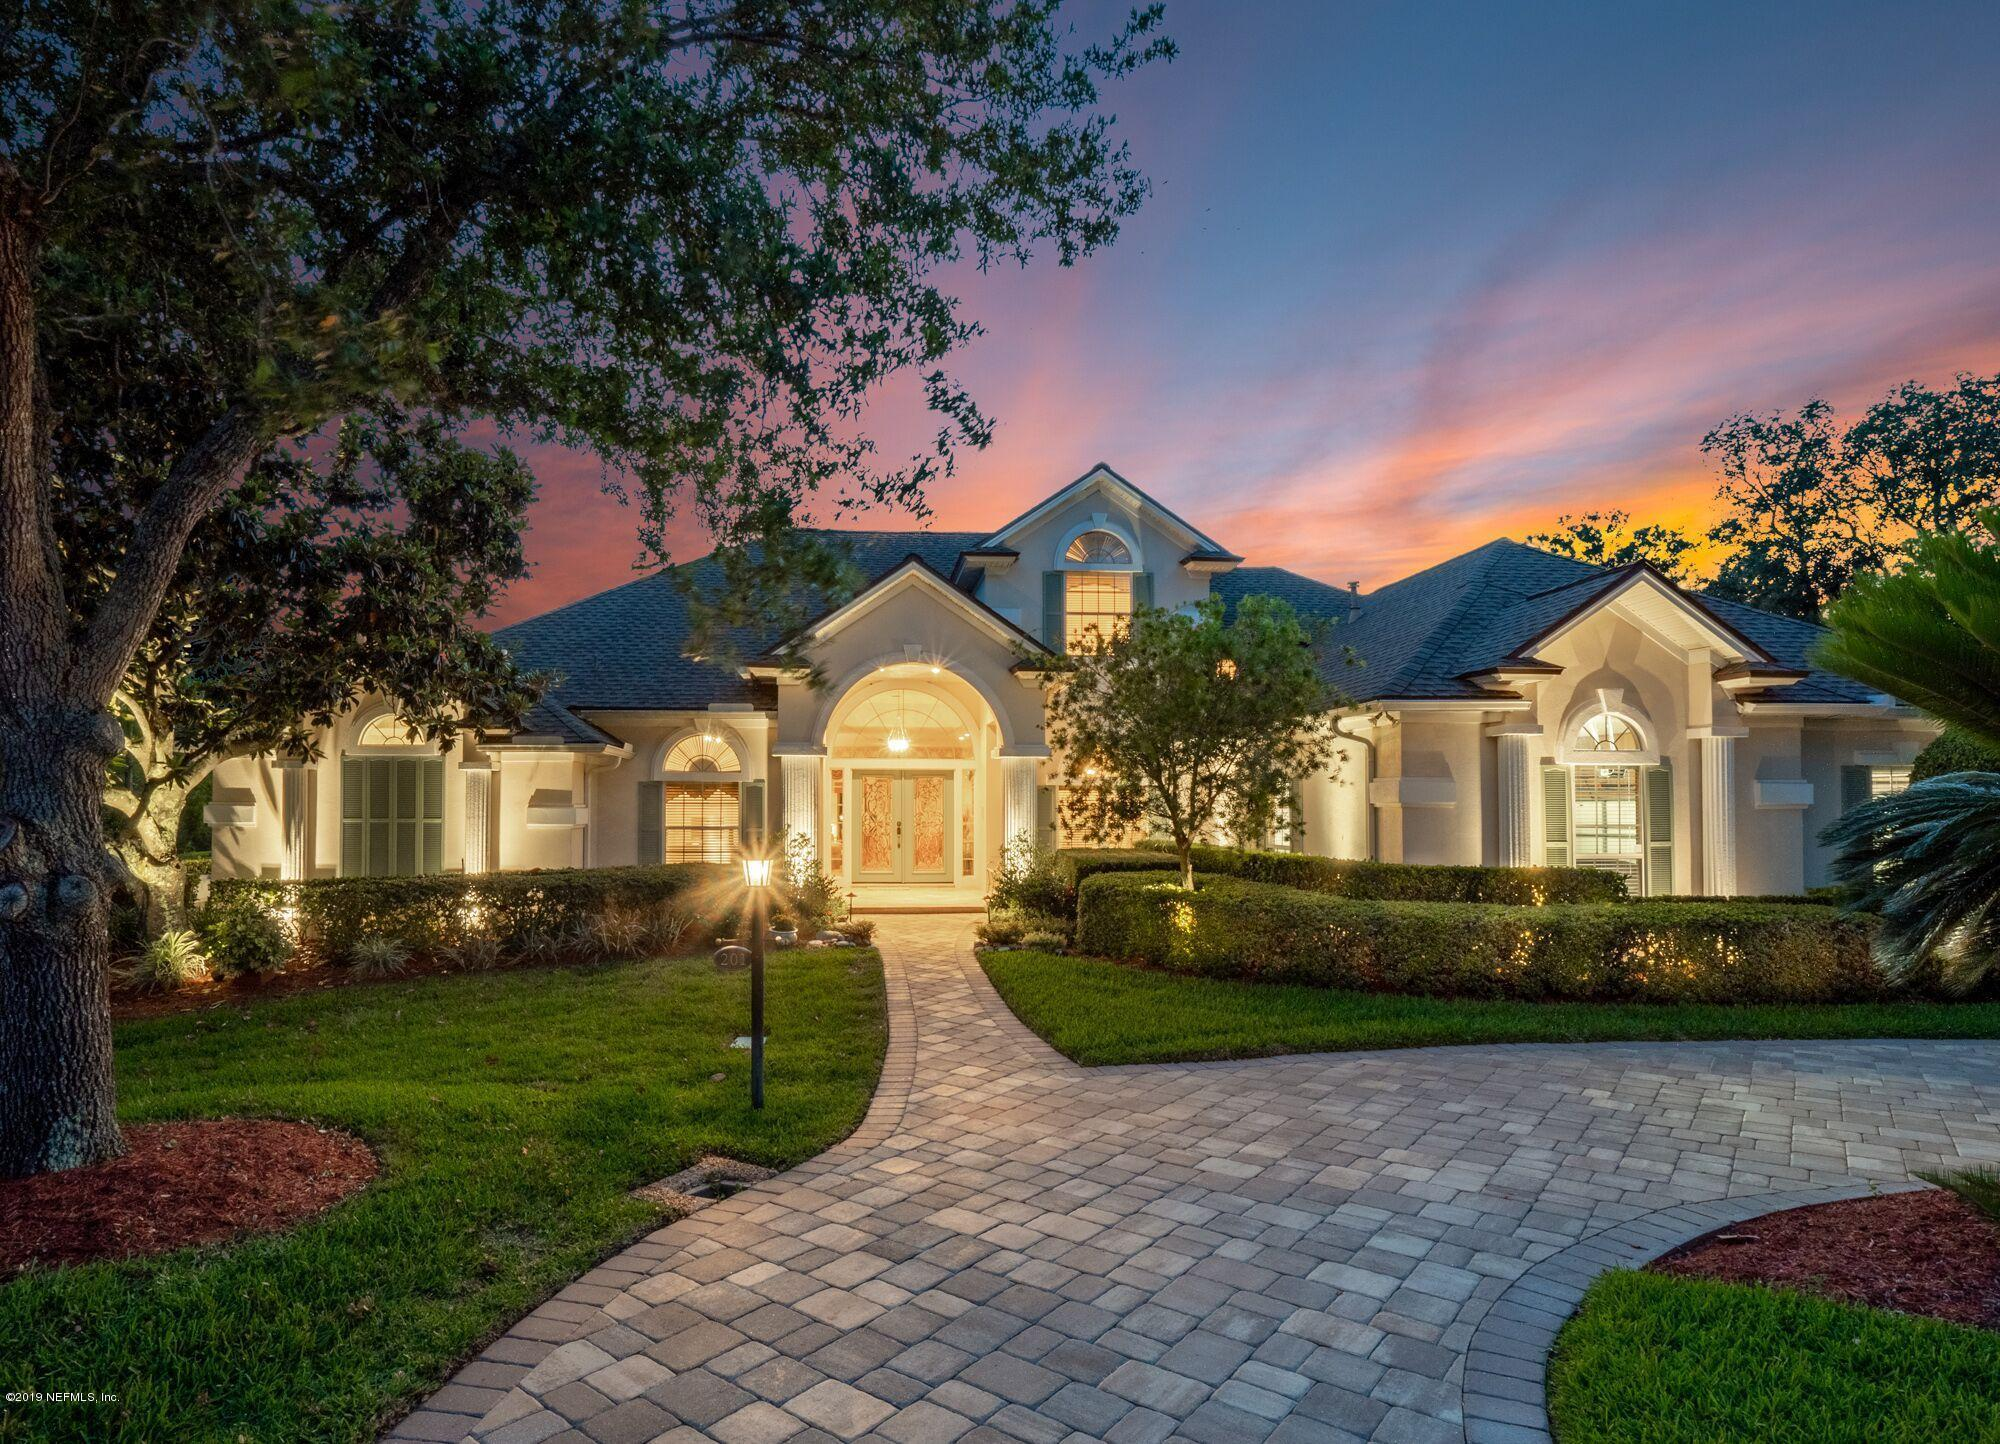 201 NORTH WIND, PONTE VEDRA BEACH, FLORIDA 32082, 5 Bedrooms Bedrooms, ,4 BathroomsBathrooms,Residential - single family,For sale,NORTH WIND,995964